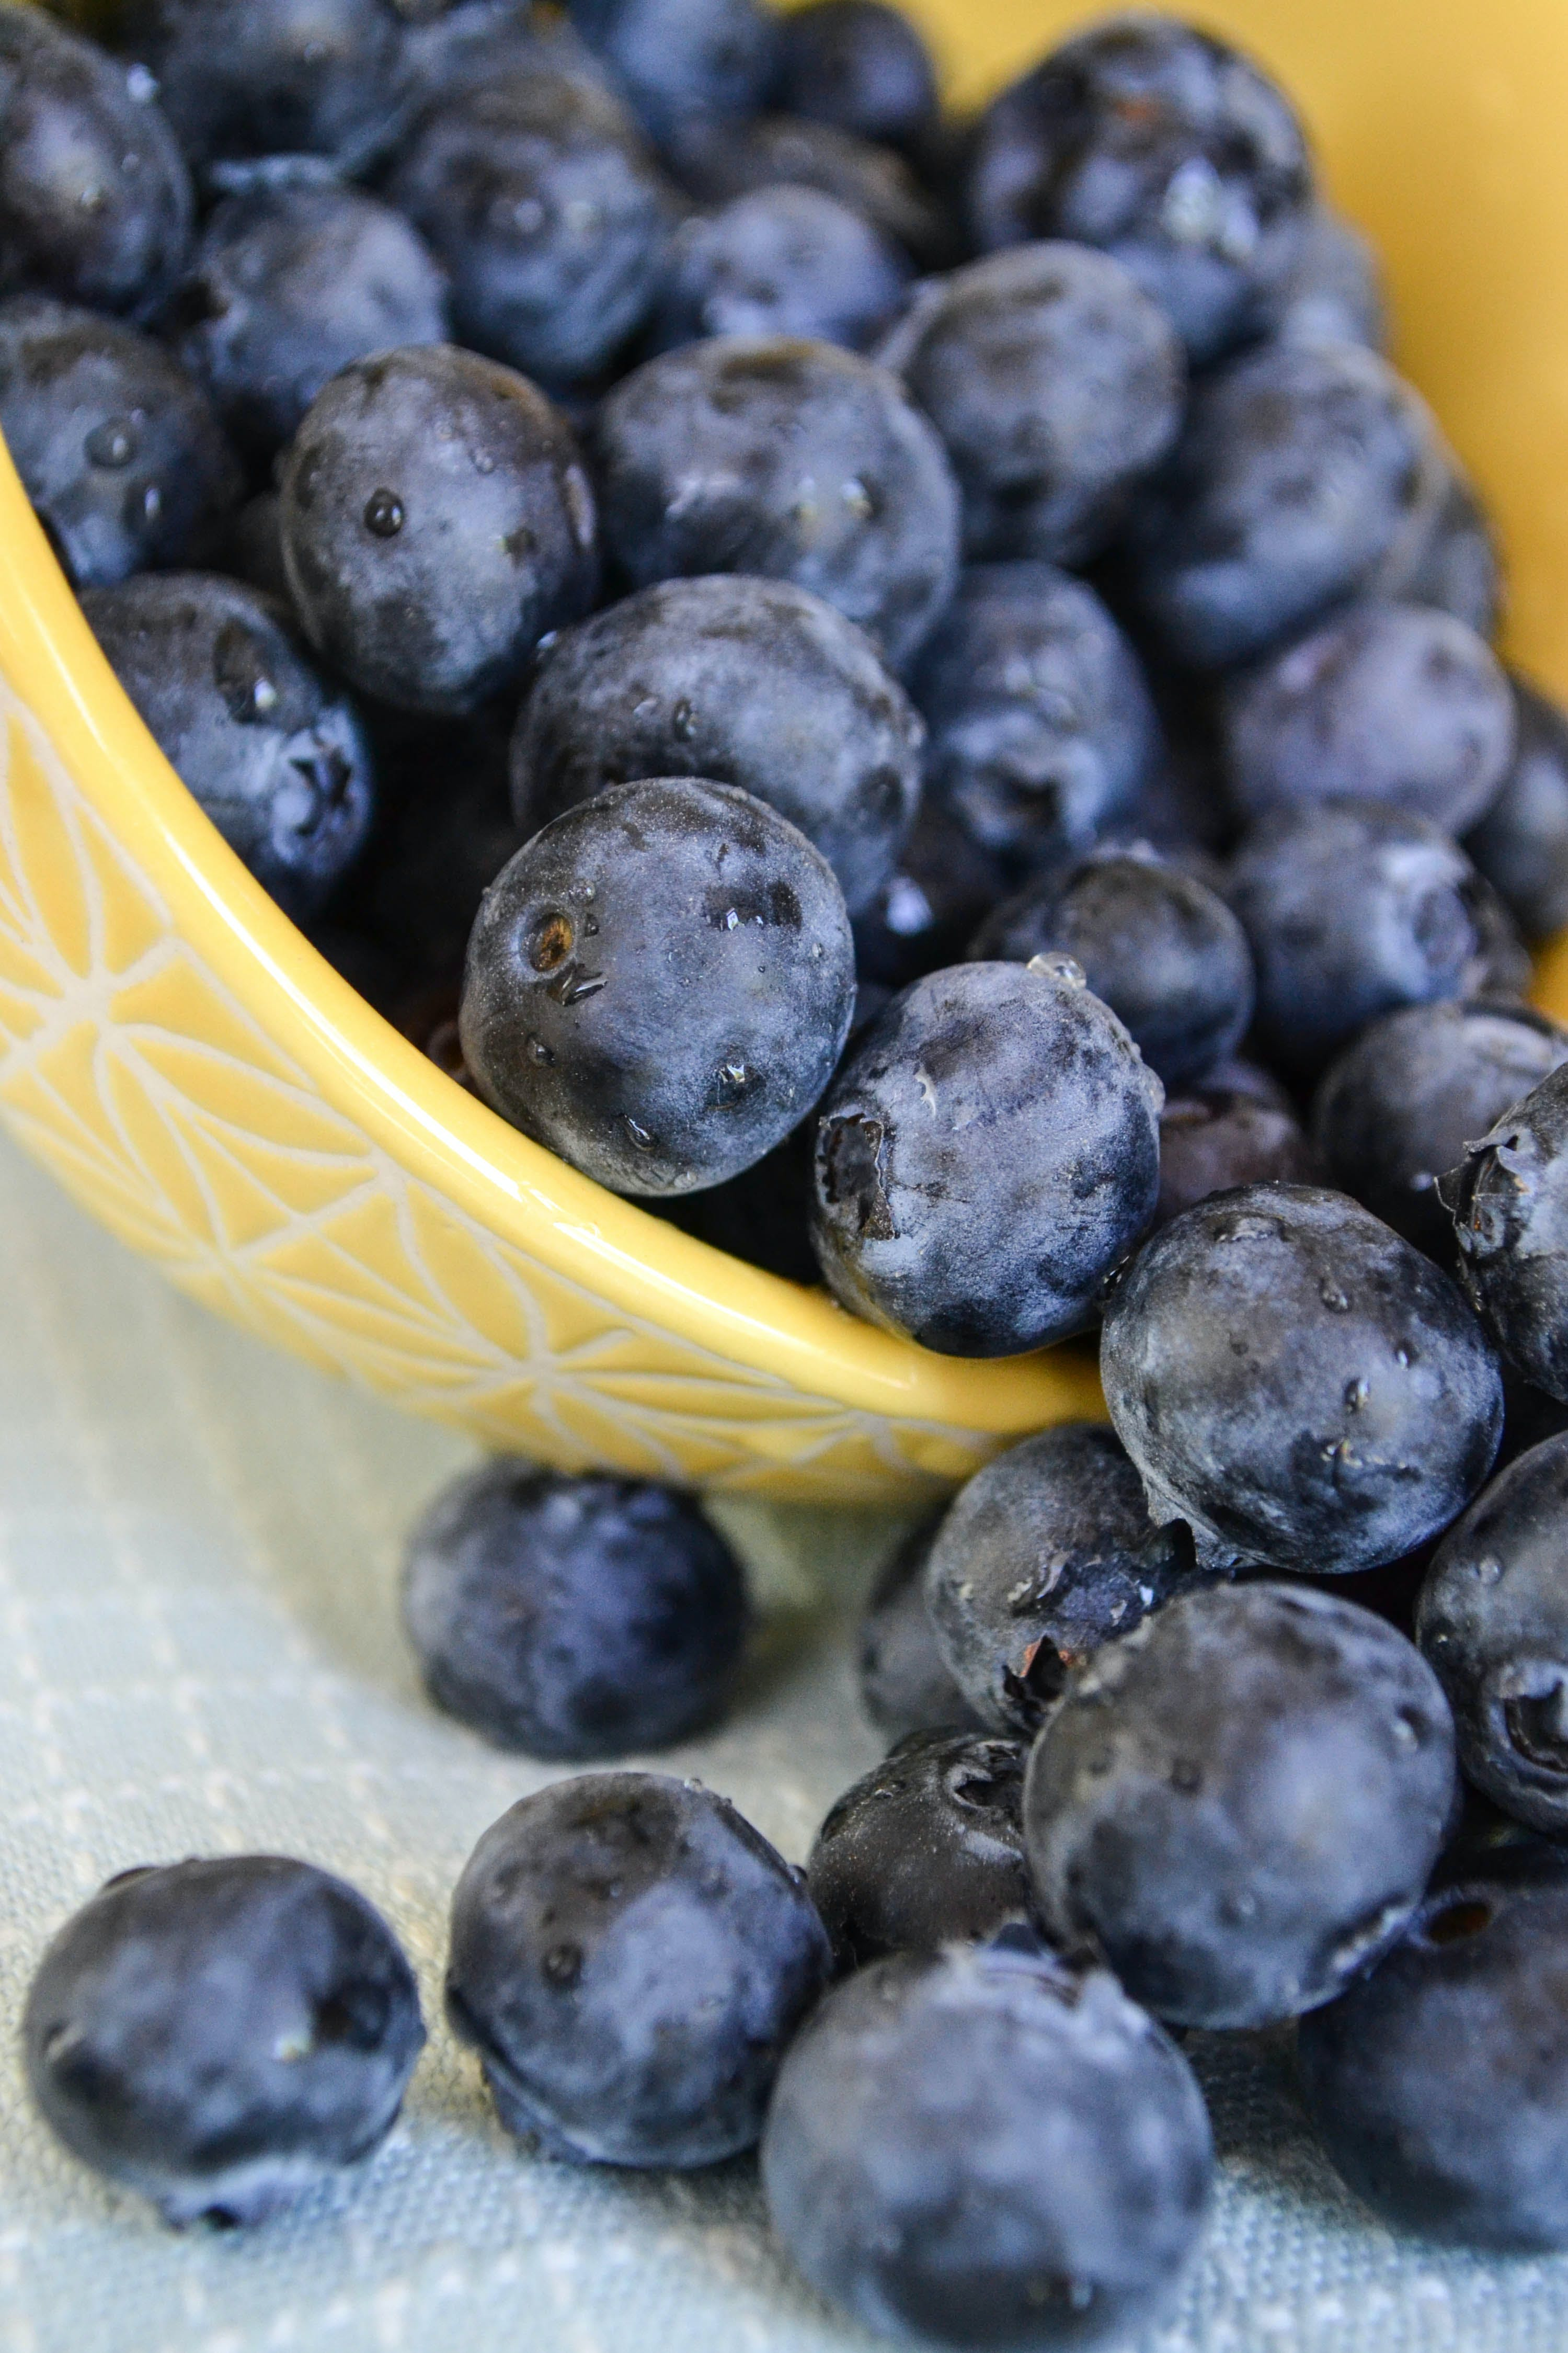 Free stock photo of food, healthy, fruits, blueberries